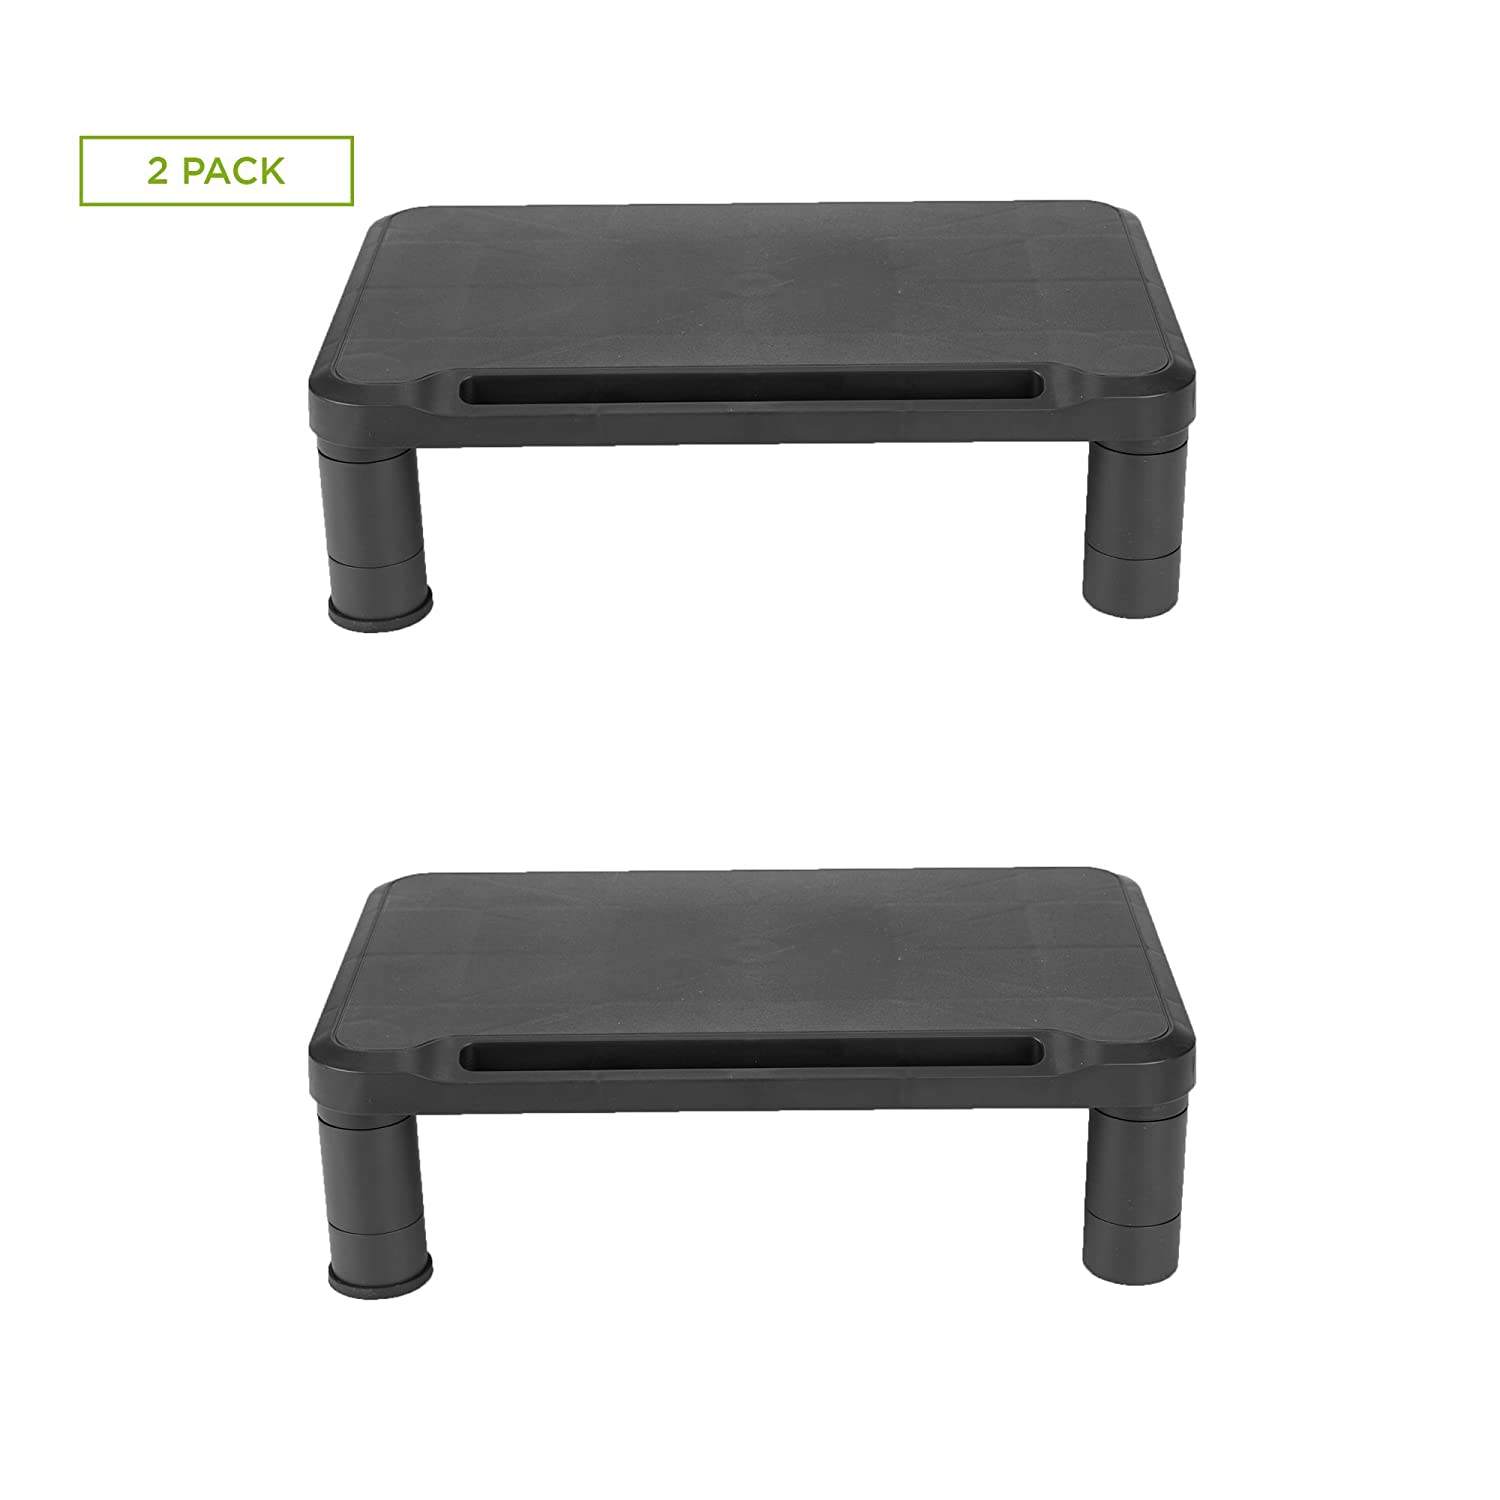 Mind Reader 2SMPLMON-BLK Small Monitor Stand, Durable Plastic Monitor Riser, for Computer Monitor, Laptop, PC, MacBook - 2 Pack, Black